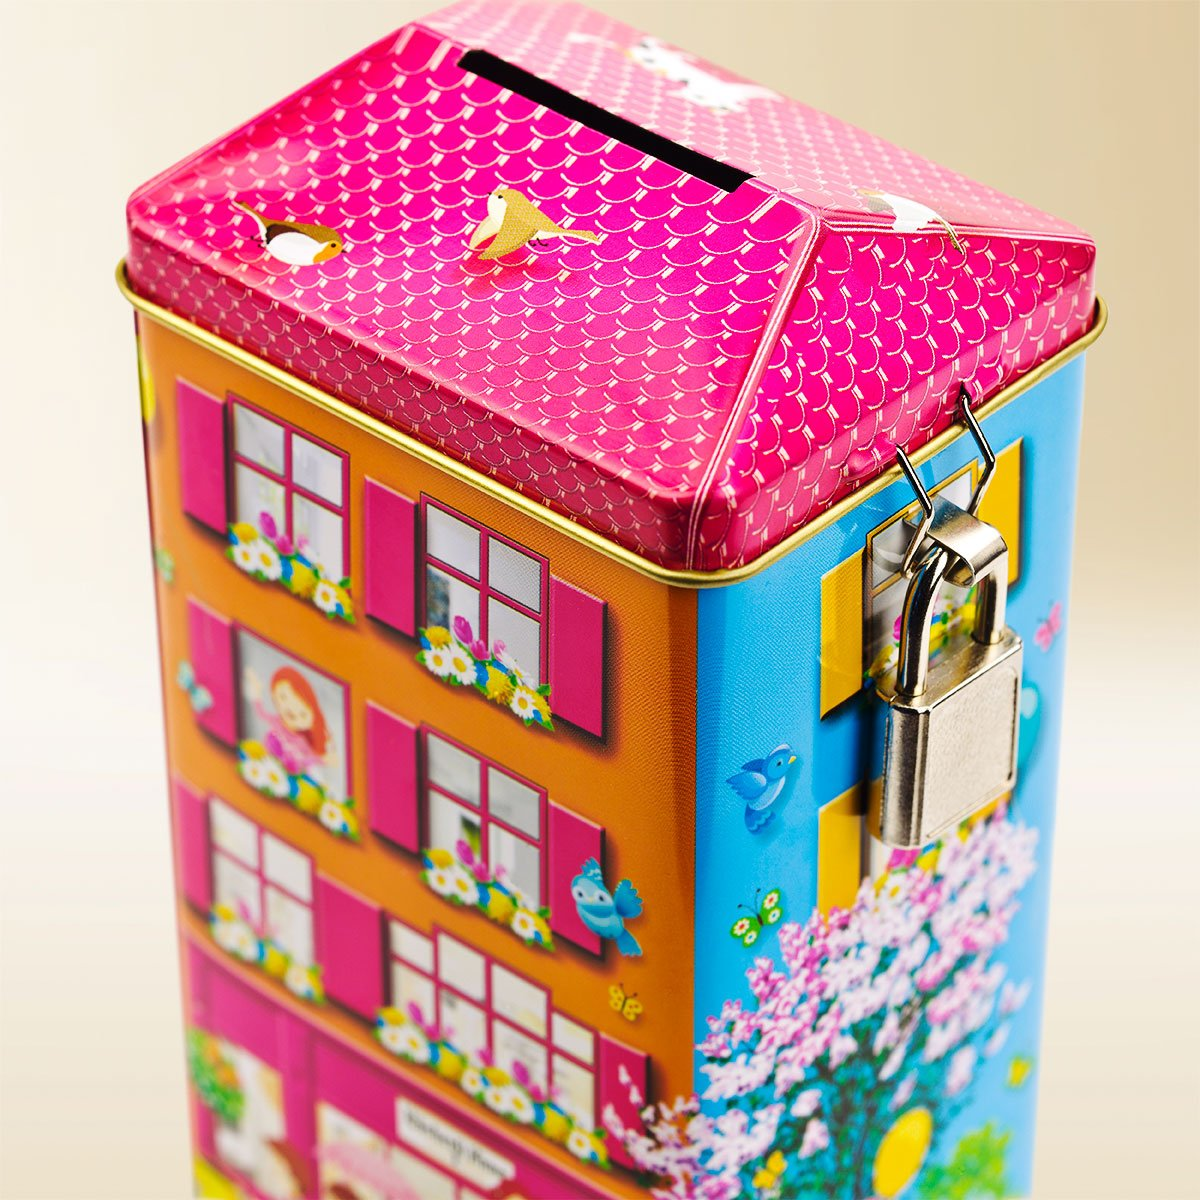 Piccolo money box tin Basler Läckerli Piccolo 180g